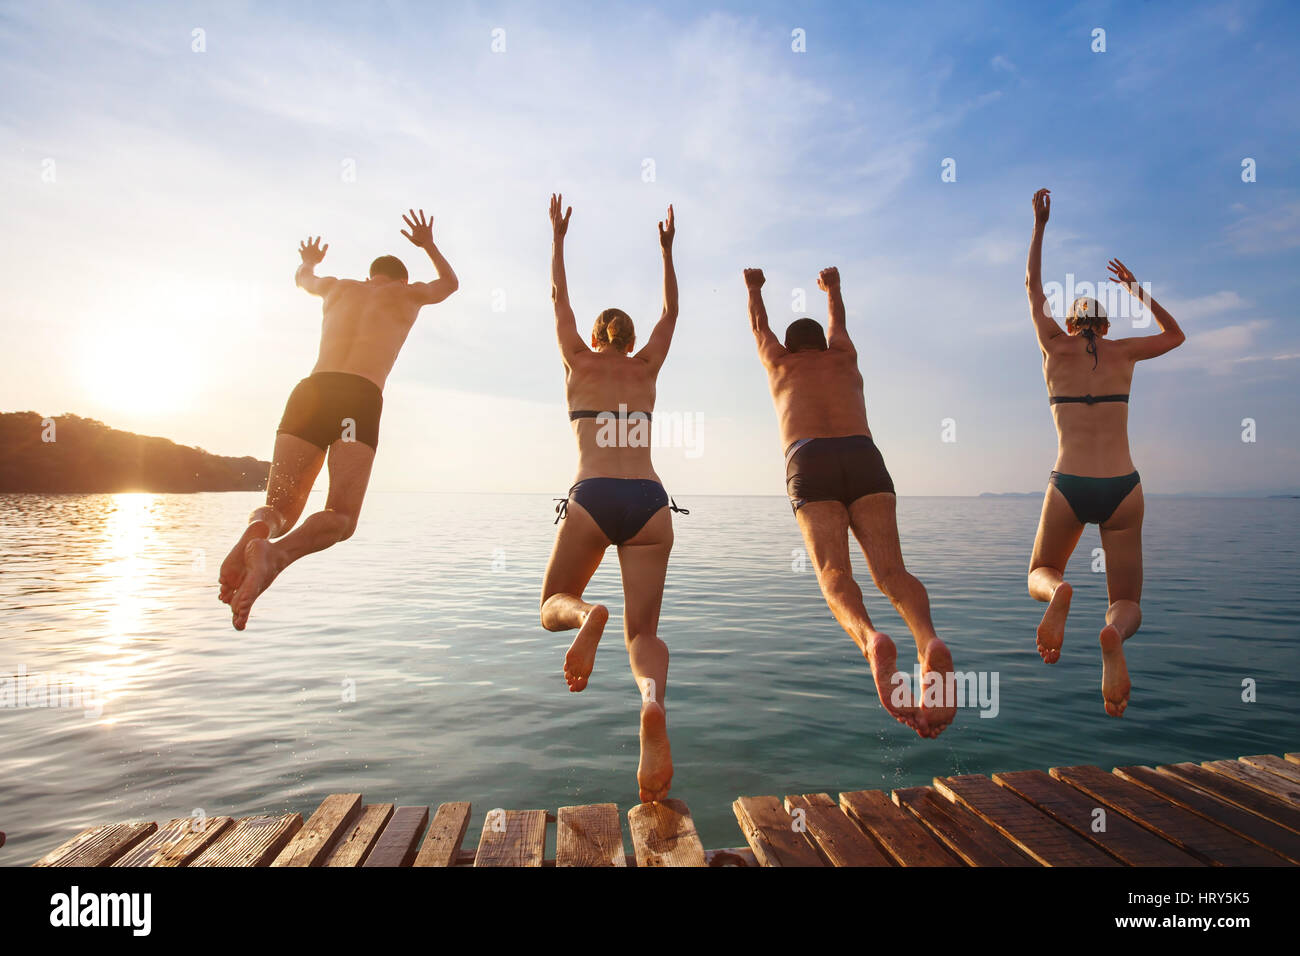 Groupe d'amis de sauter à la mer de la jetée, happy beach holidays Photo Stock